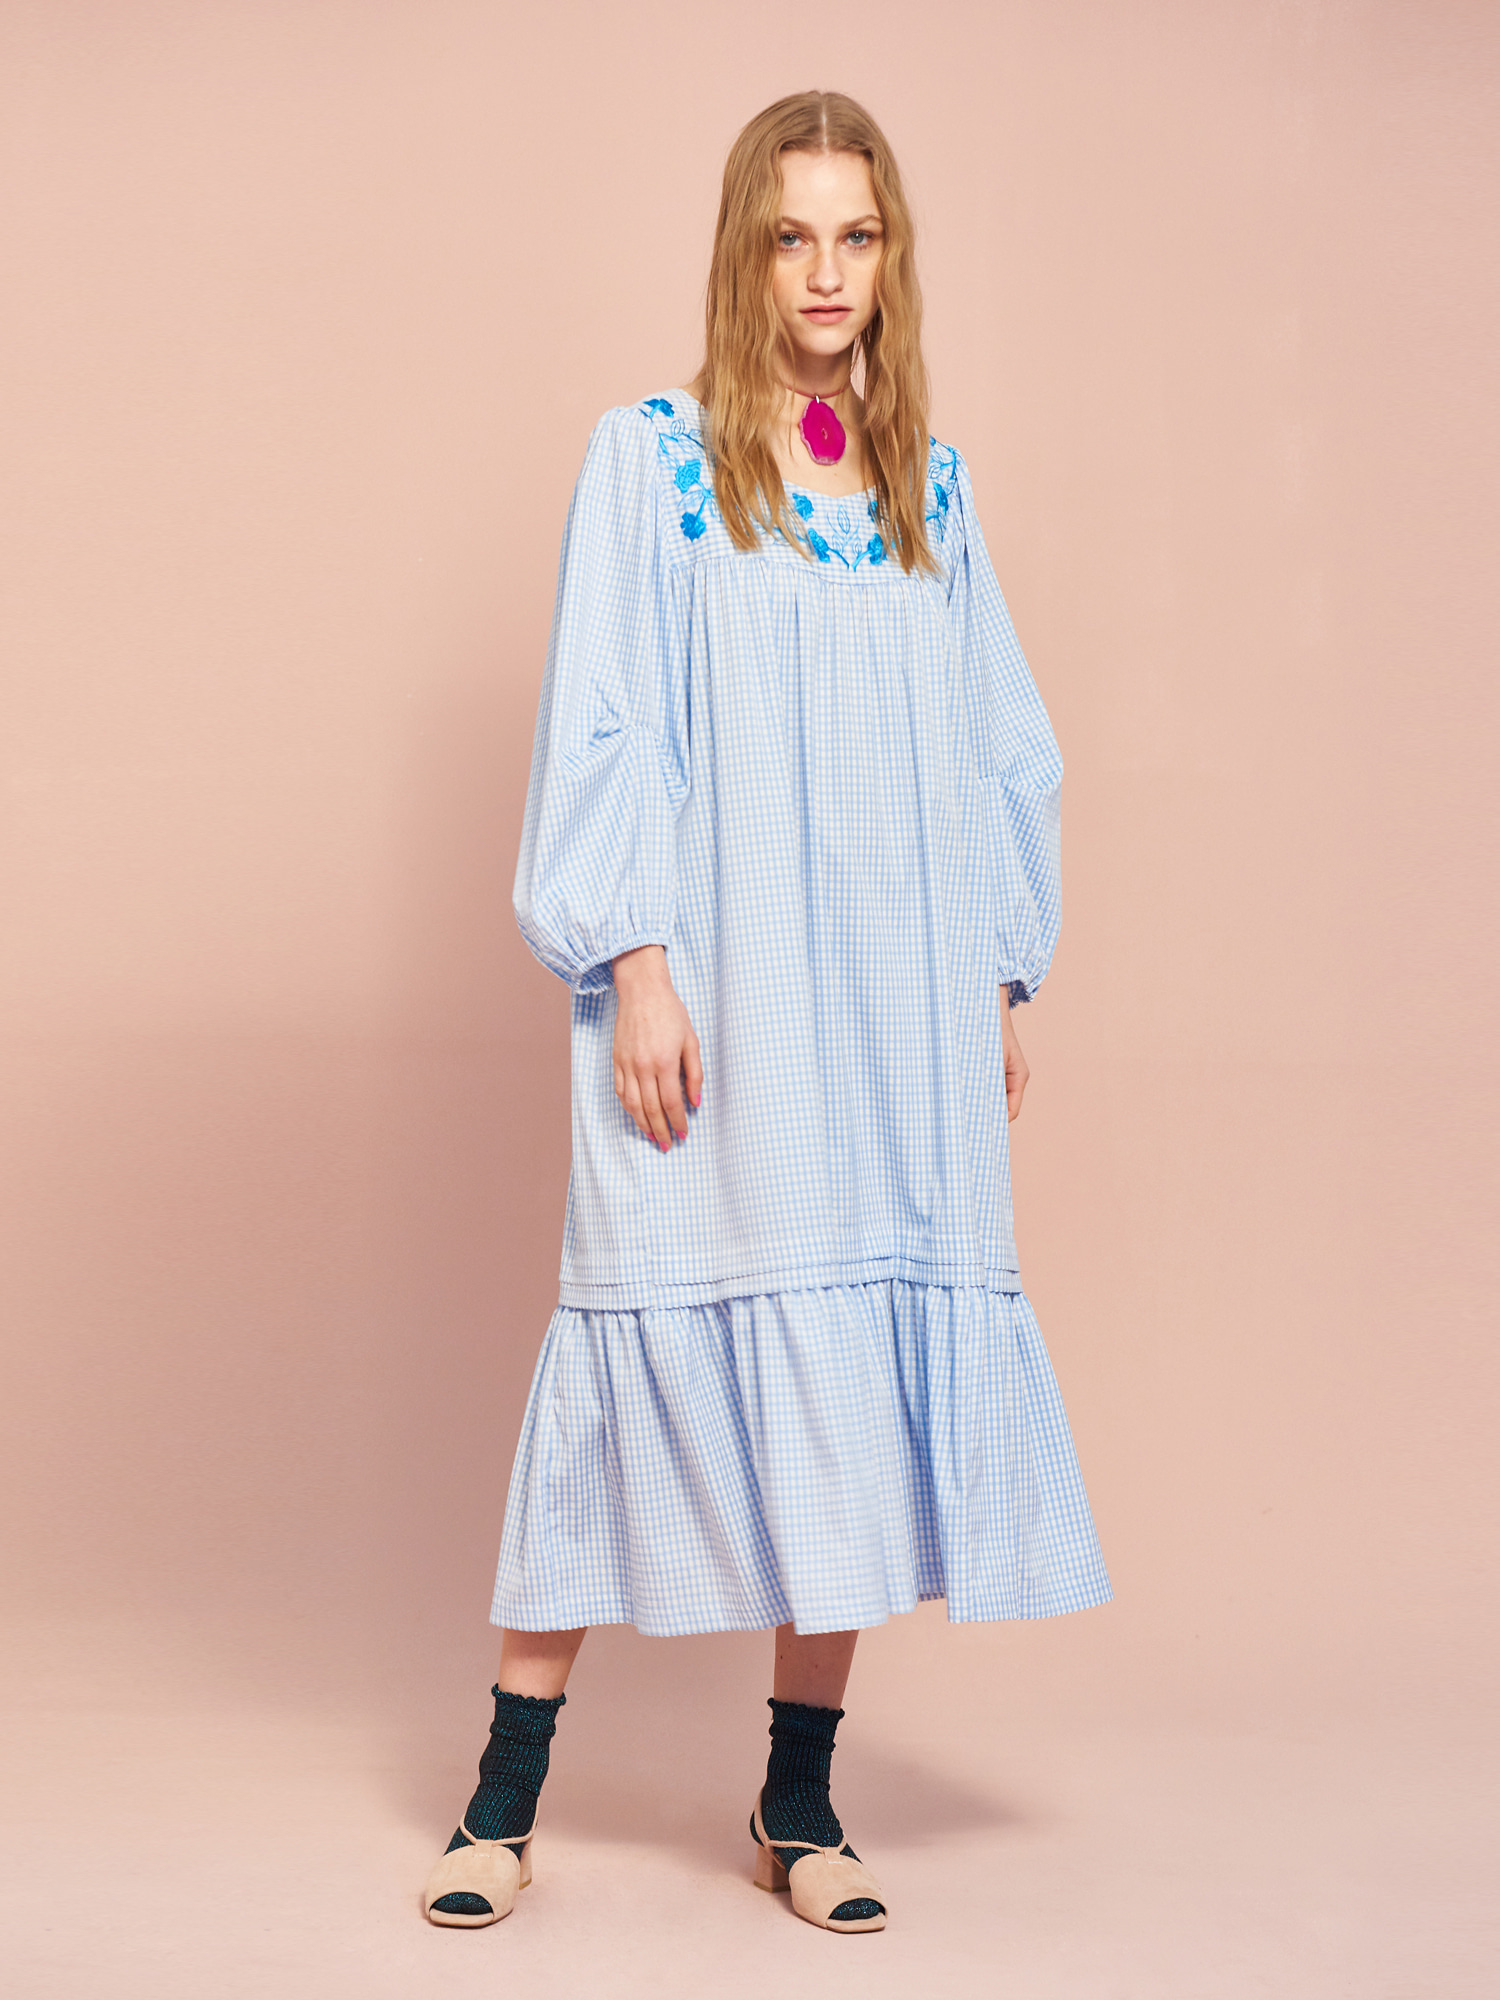 [Clearance 50%Off]Gingham Embroidery Dress in Sky Blue